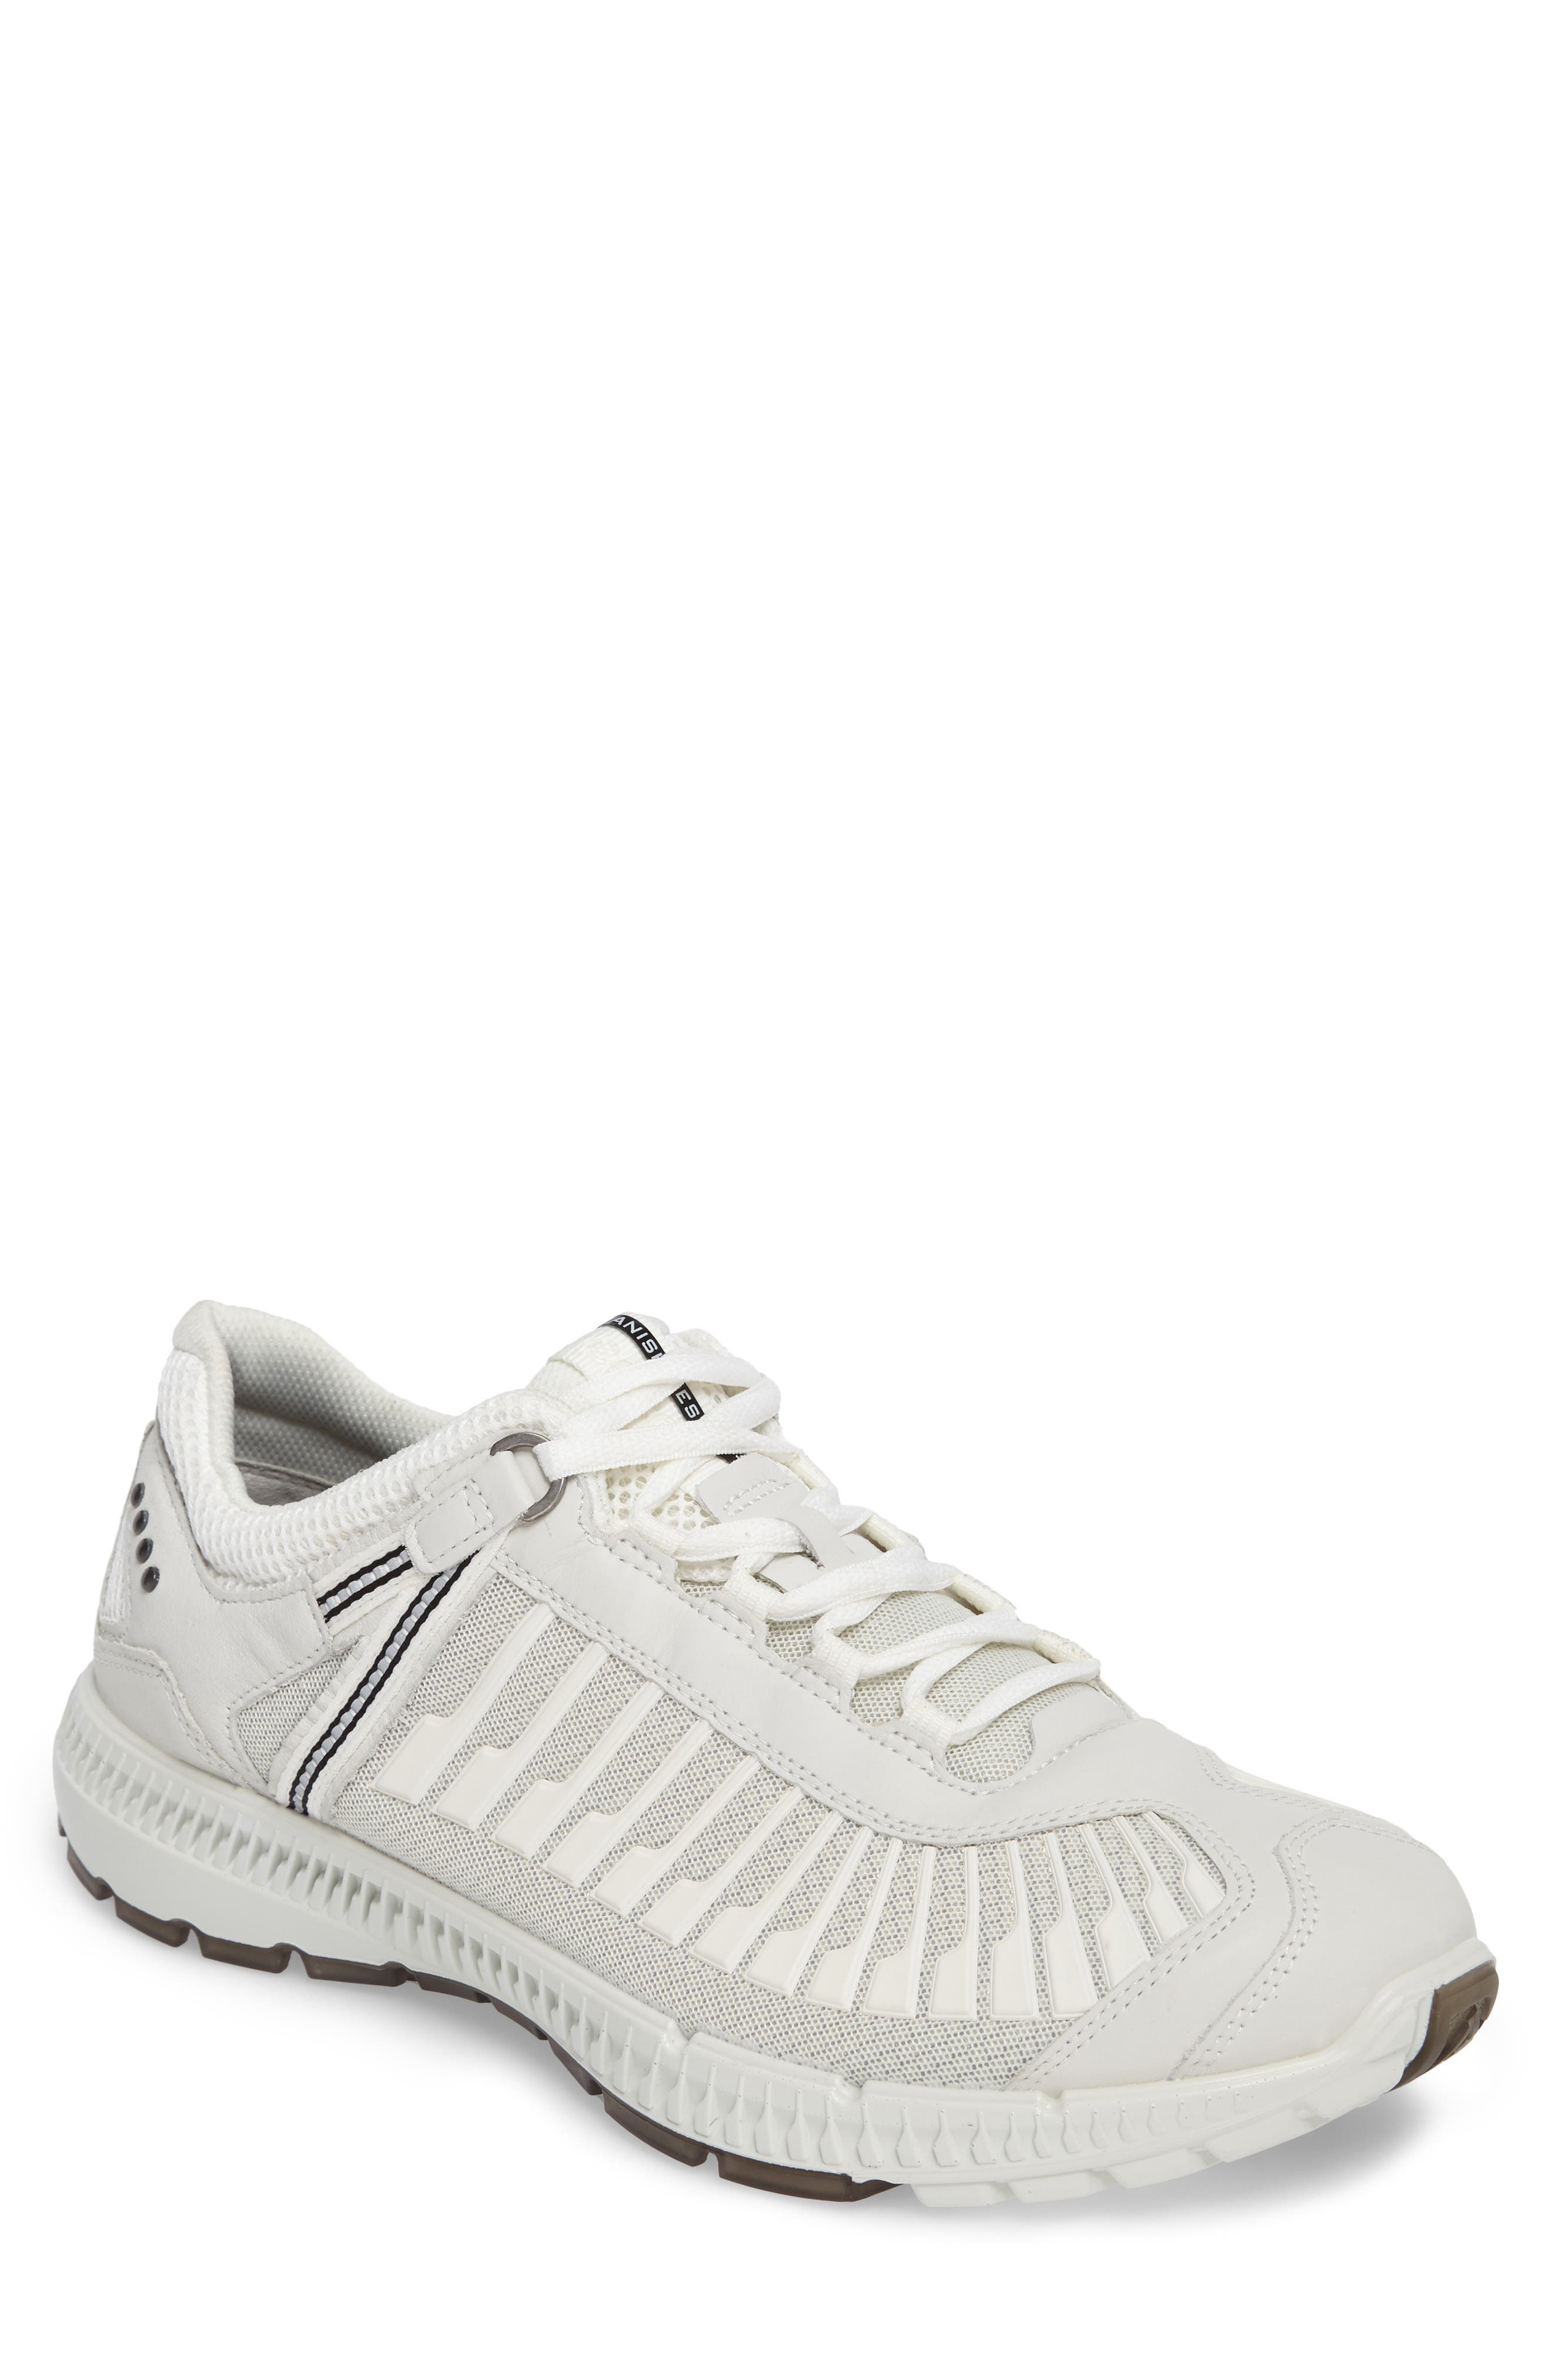 Intrinsic TR Run Sneaker,                         Main,                         color, White Leather